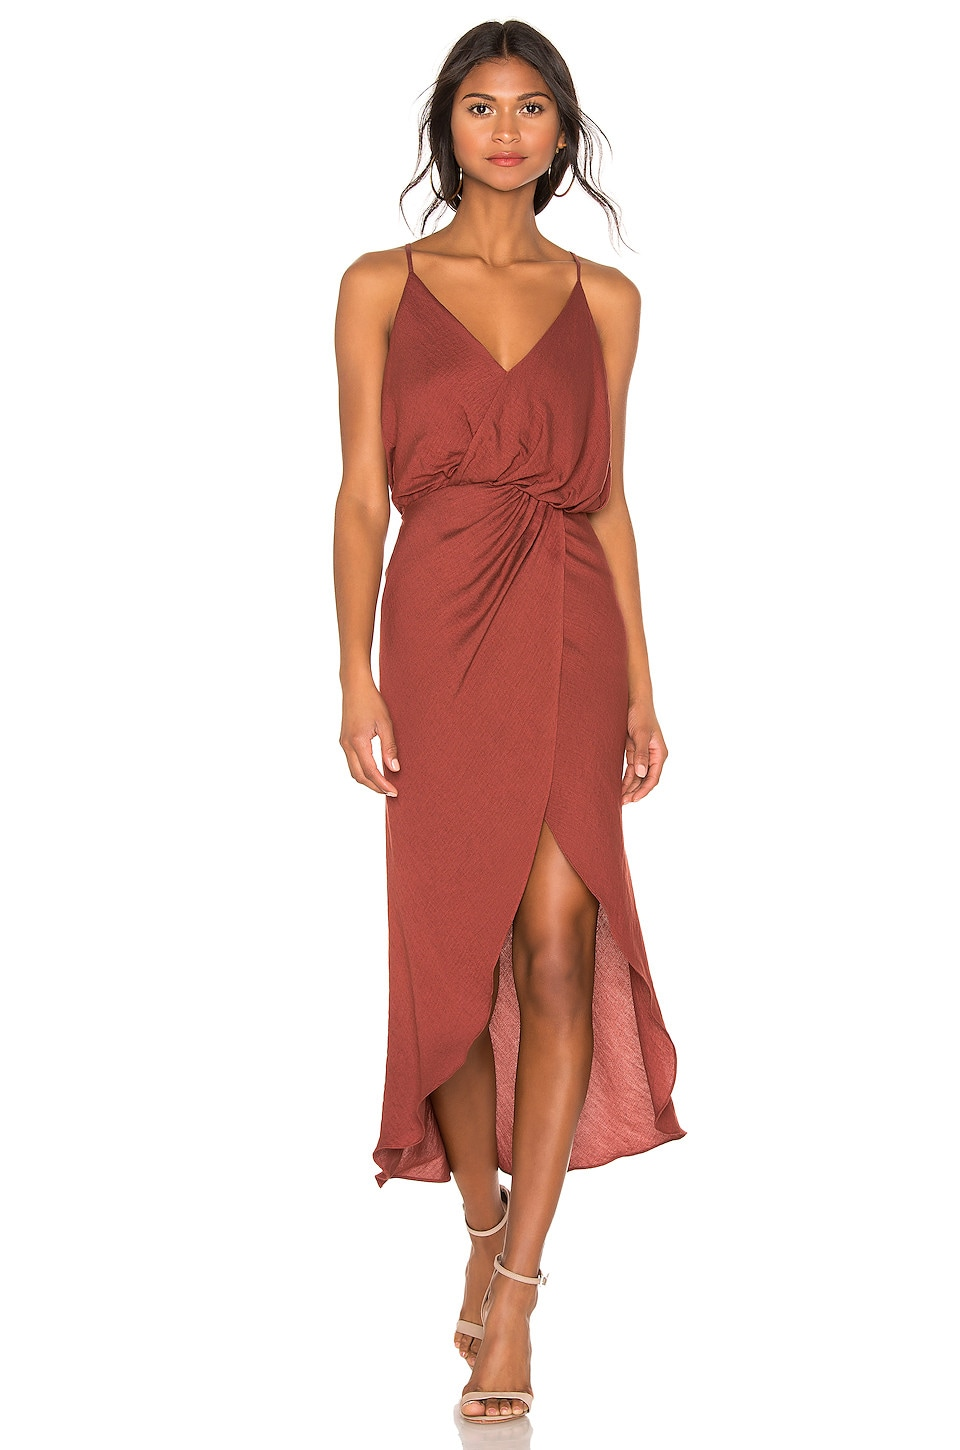 Joie Tanika Dress in Tawny